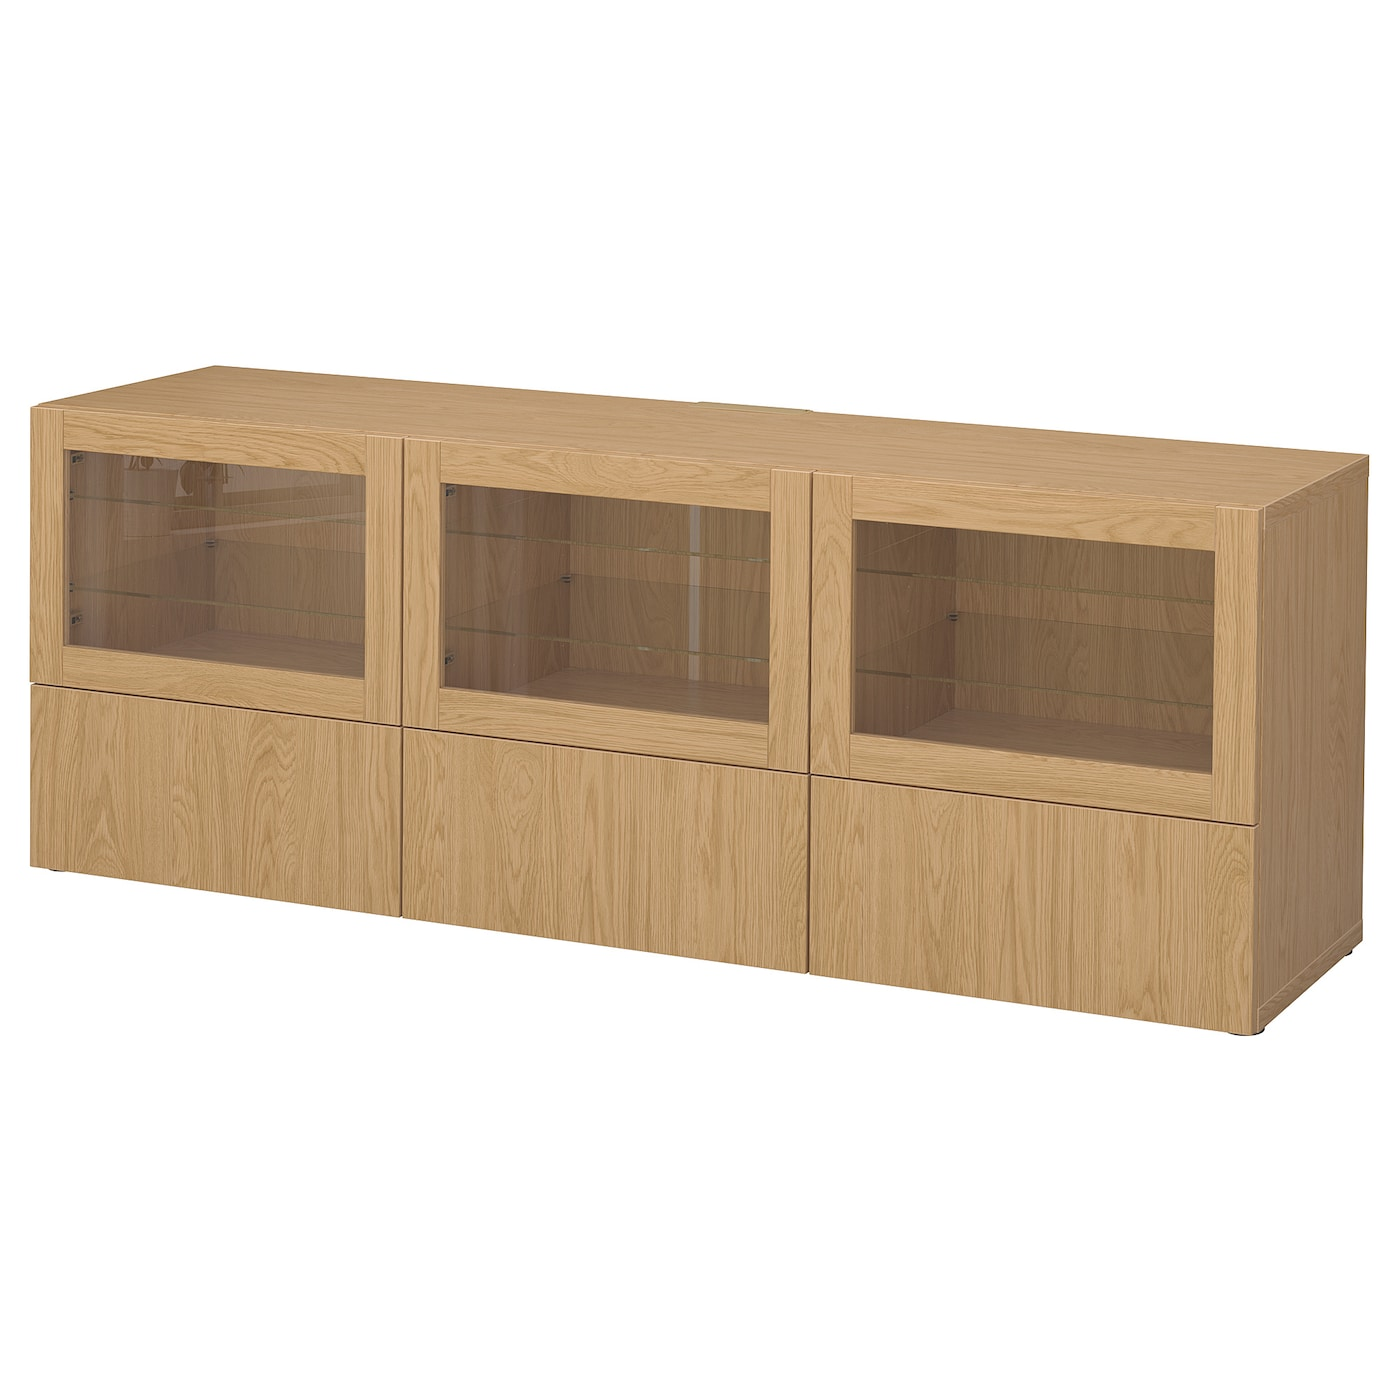 IKEA BESTÅ TV bench with doors and drawers